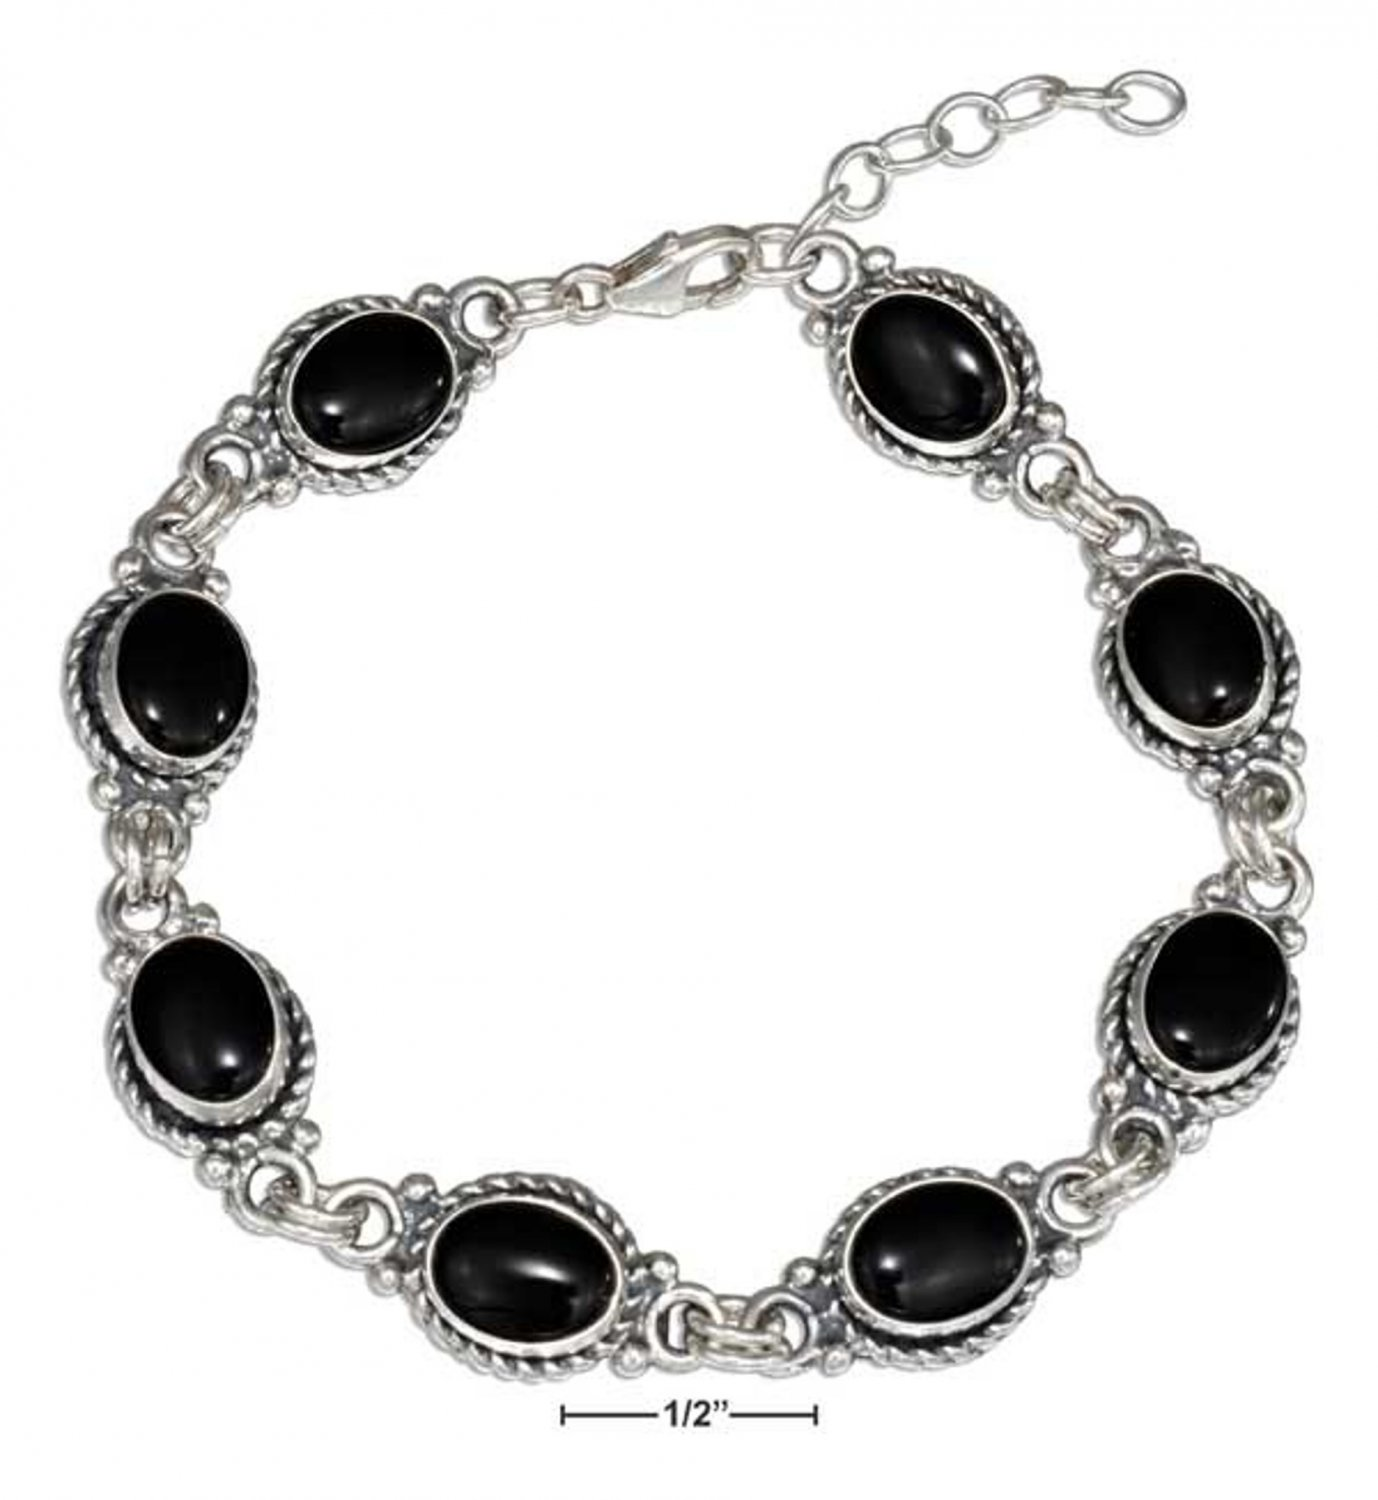 Sterling Silver 7 inch Southwest style Bracelet with Black Onyx Stones